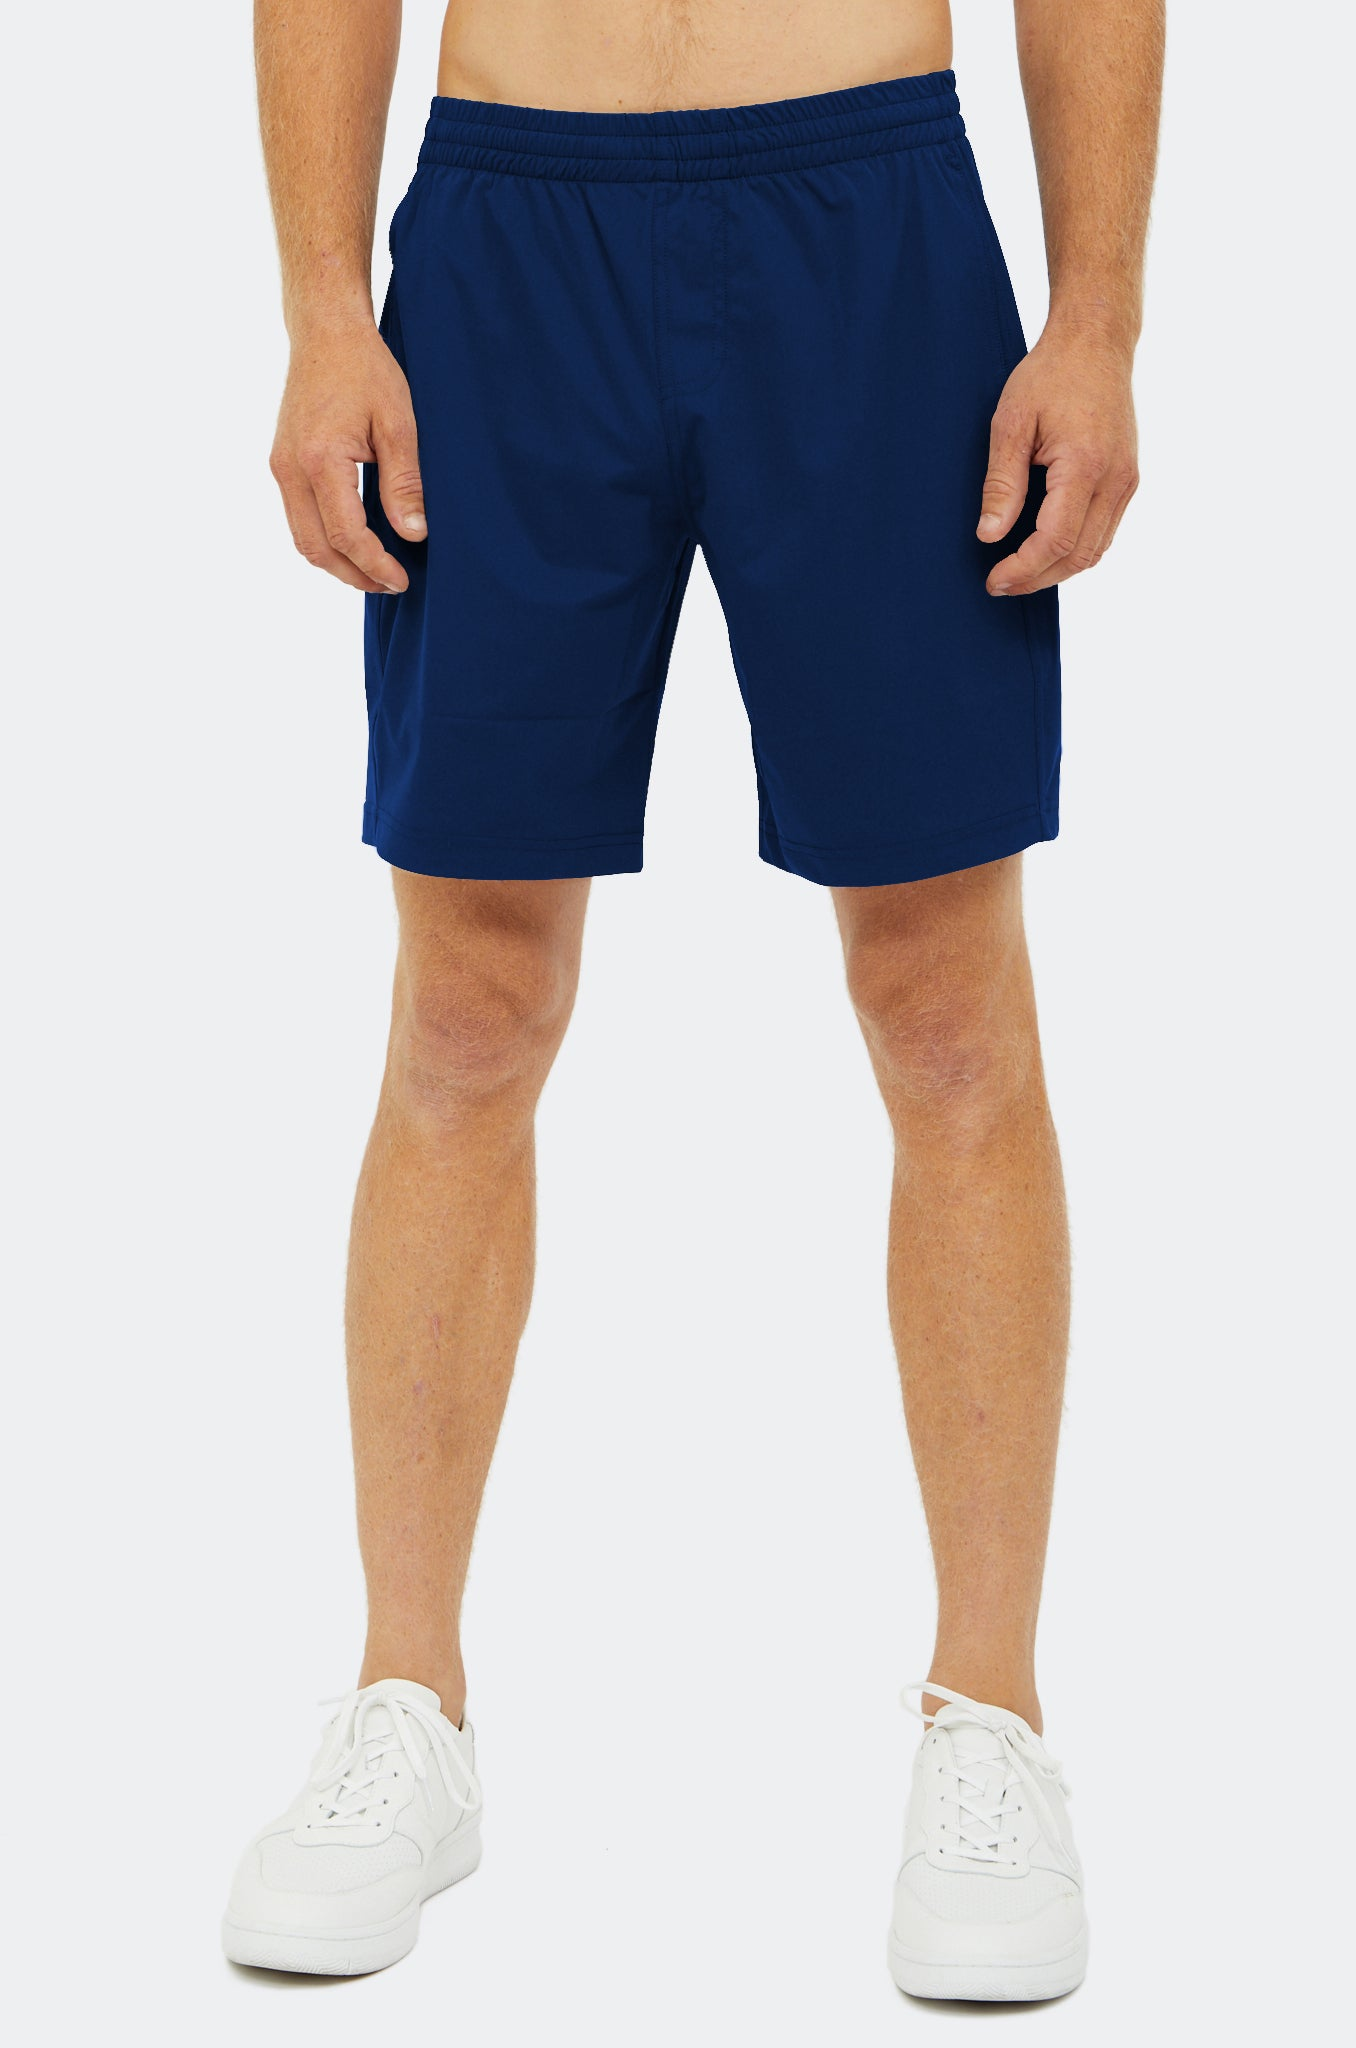 Byron Short in Navy